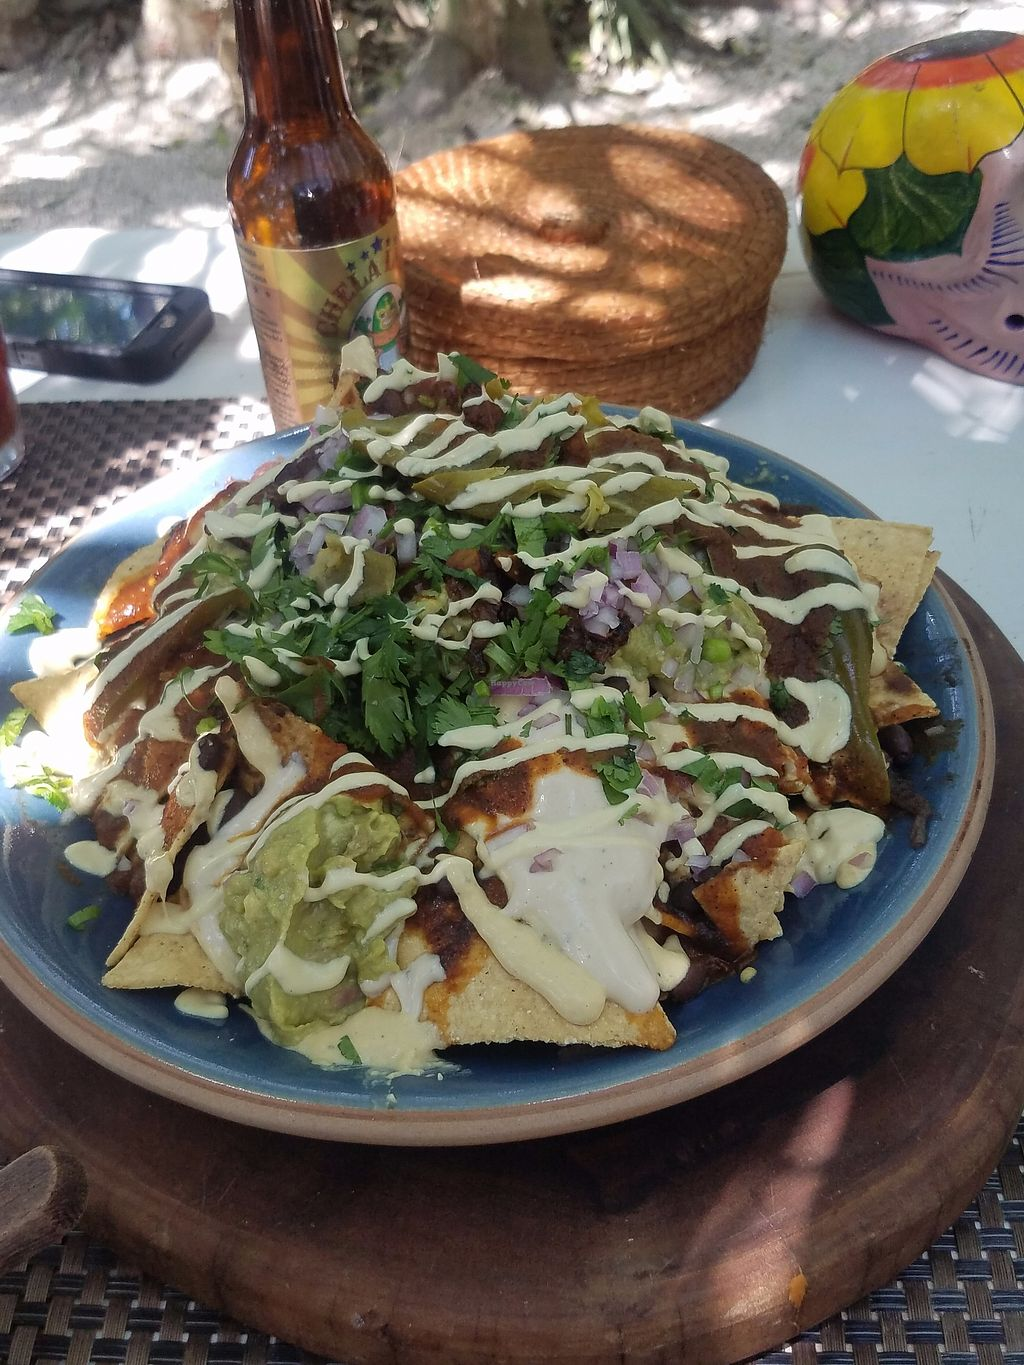 """Photo of Charly's Vegan Tacos - Food Truck  by <a href=""""/members/profile/Heather%20Vegan%20Diggs"""">Heather Vegan Diggs</a> <br/>Machos Nachos <br/> July 20, 2017  - <a href='/contact/abuse/image/68102/282641'>Report</a>"""